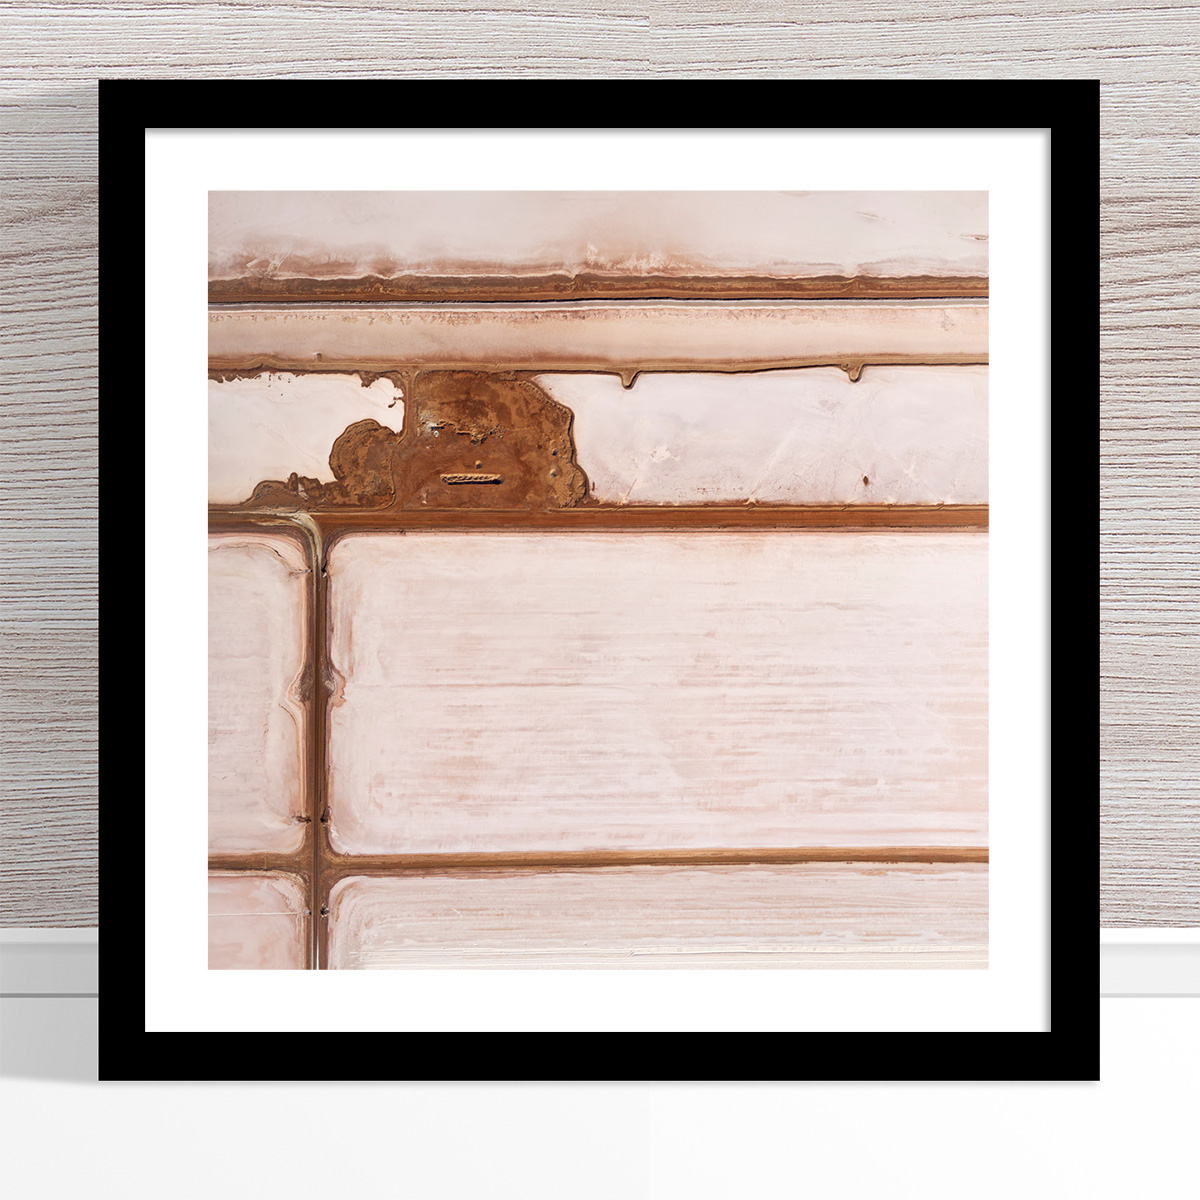 Chris Saunders - 'Aerial Salt 011' Black Frame